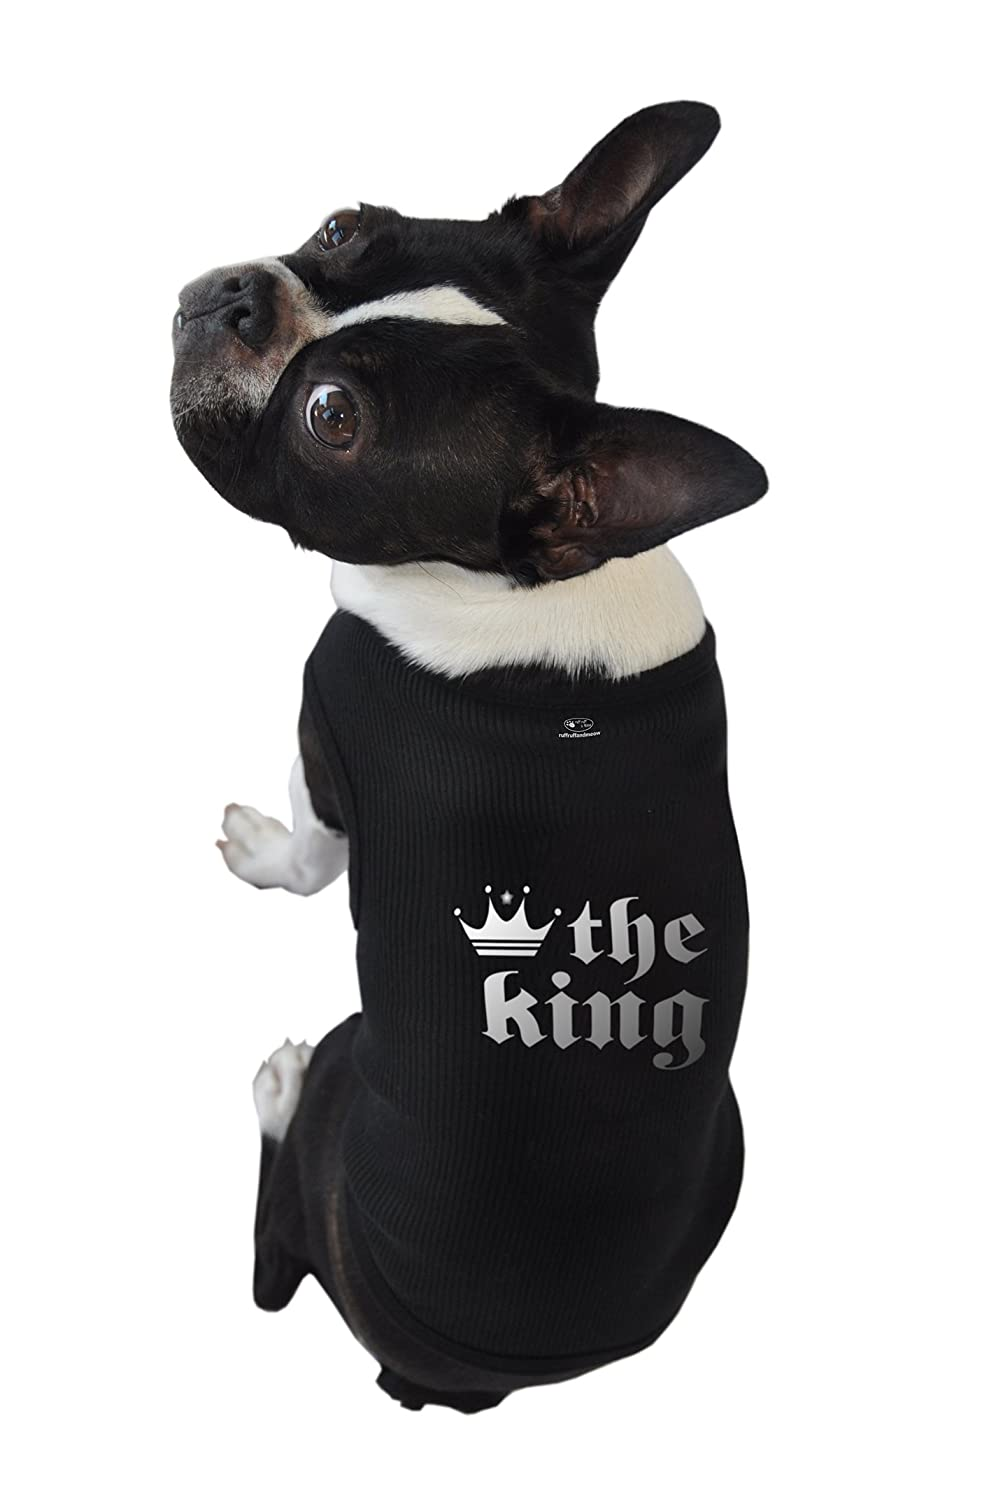 Ruff Ruff and Meow Extra-Large Dog Tank Top, The King, Black